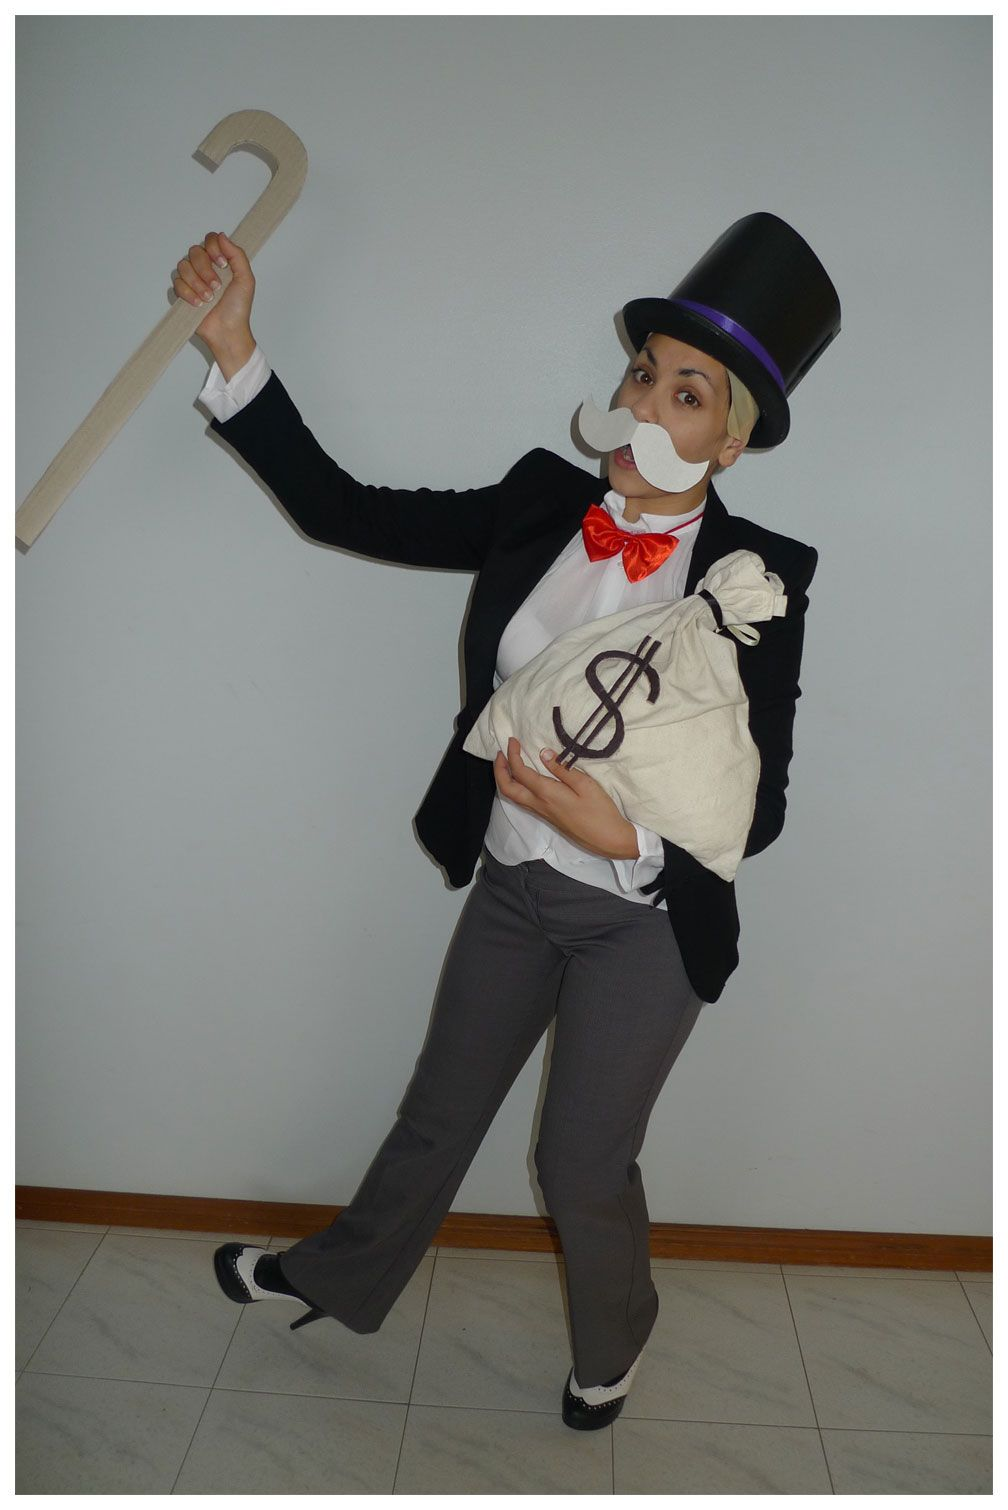 monopoly man costume whole cane money bag runjpg 10081510 pixels